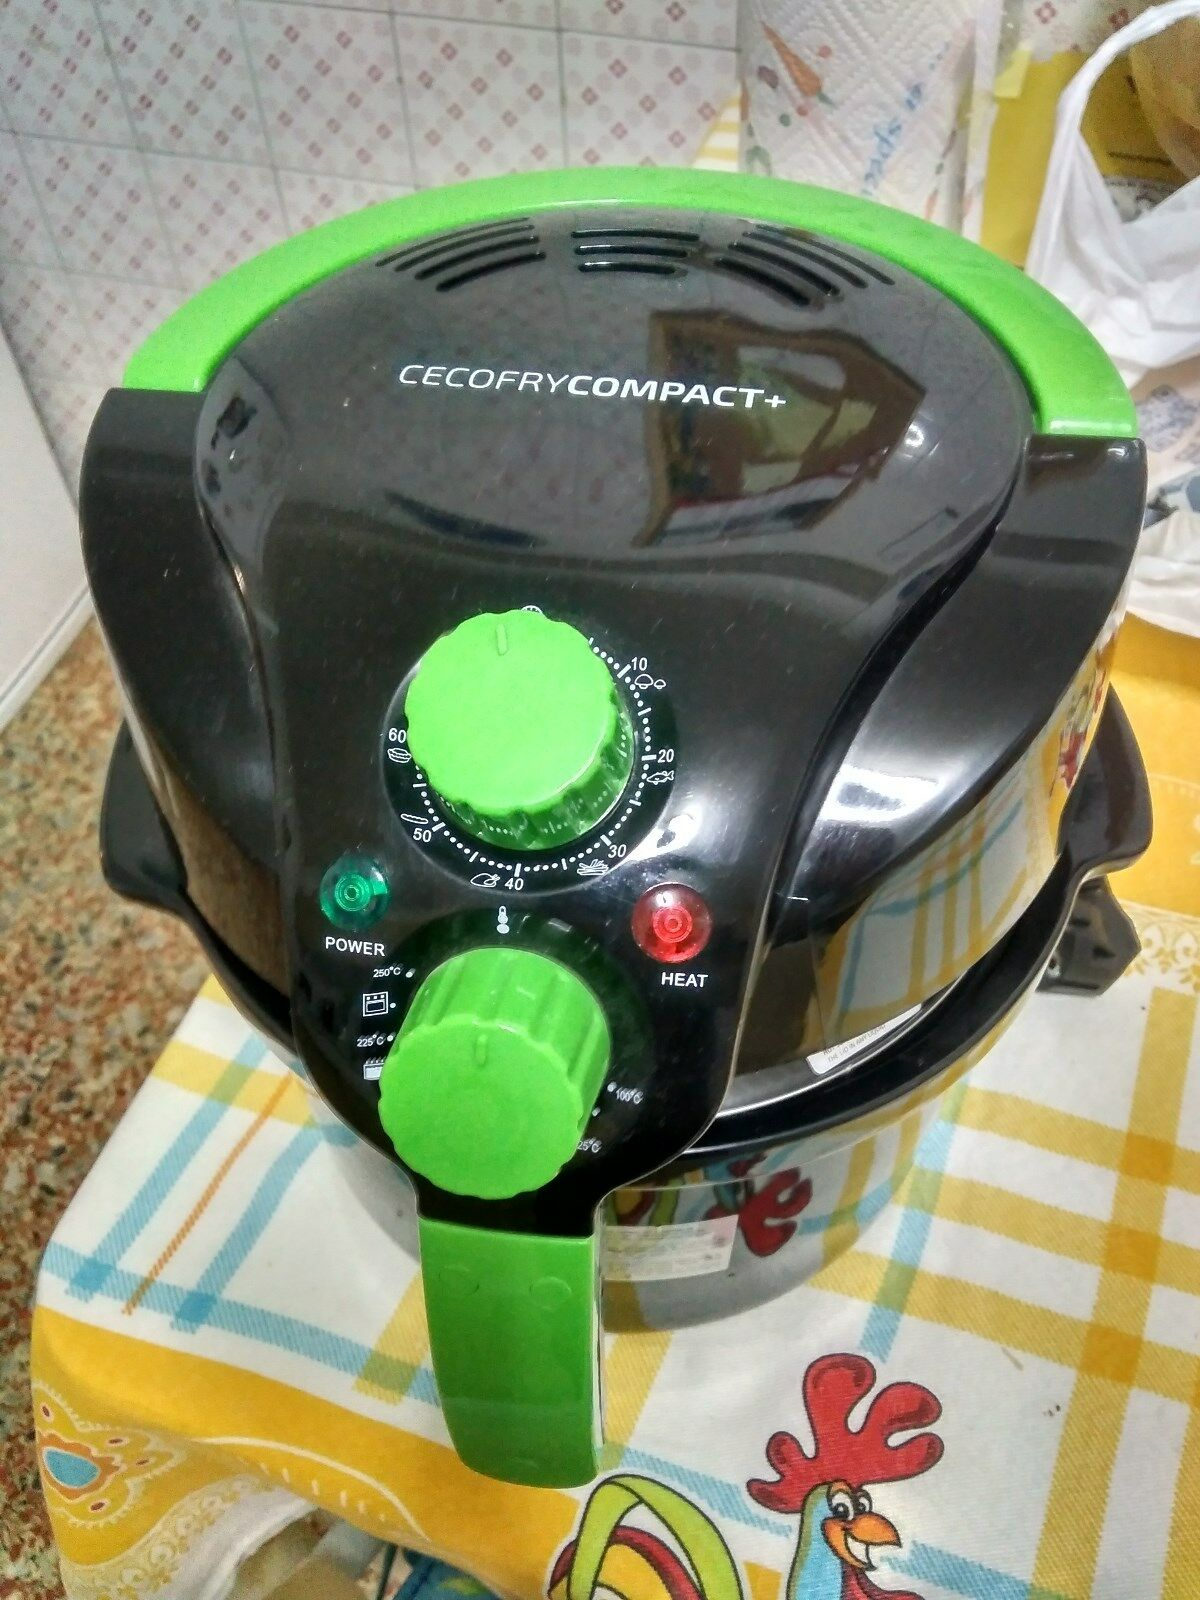 cecofry compact rapid